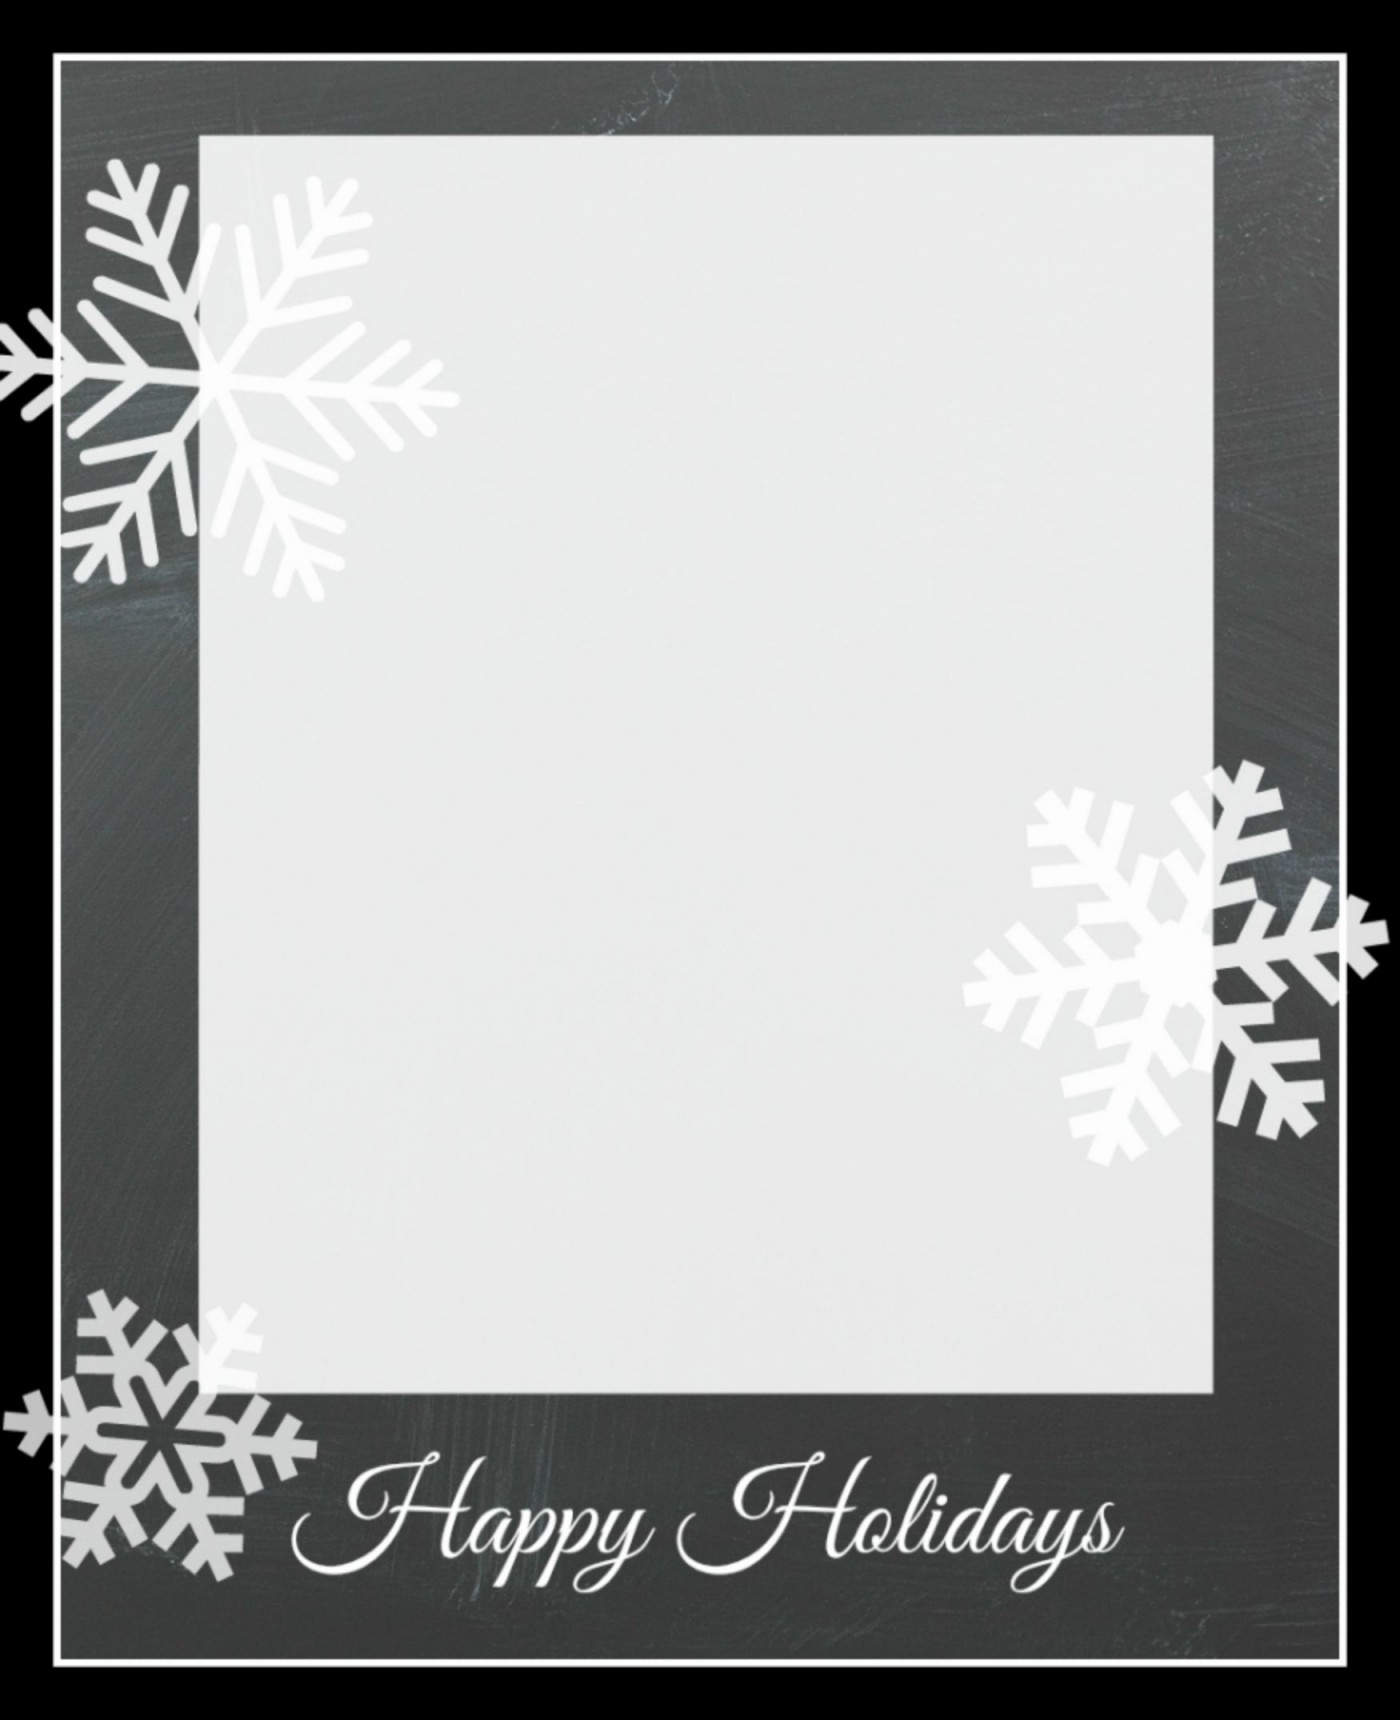 010 Remarkable Free Photo Card Template Idea  Printable Holiday Christma For Word Online1400